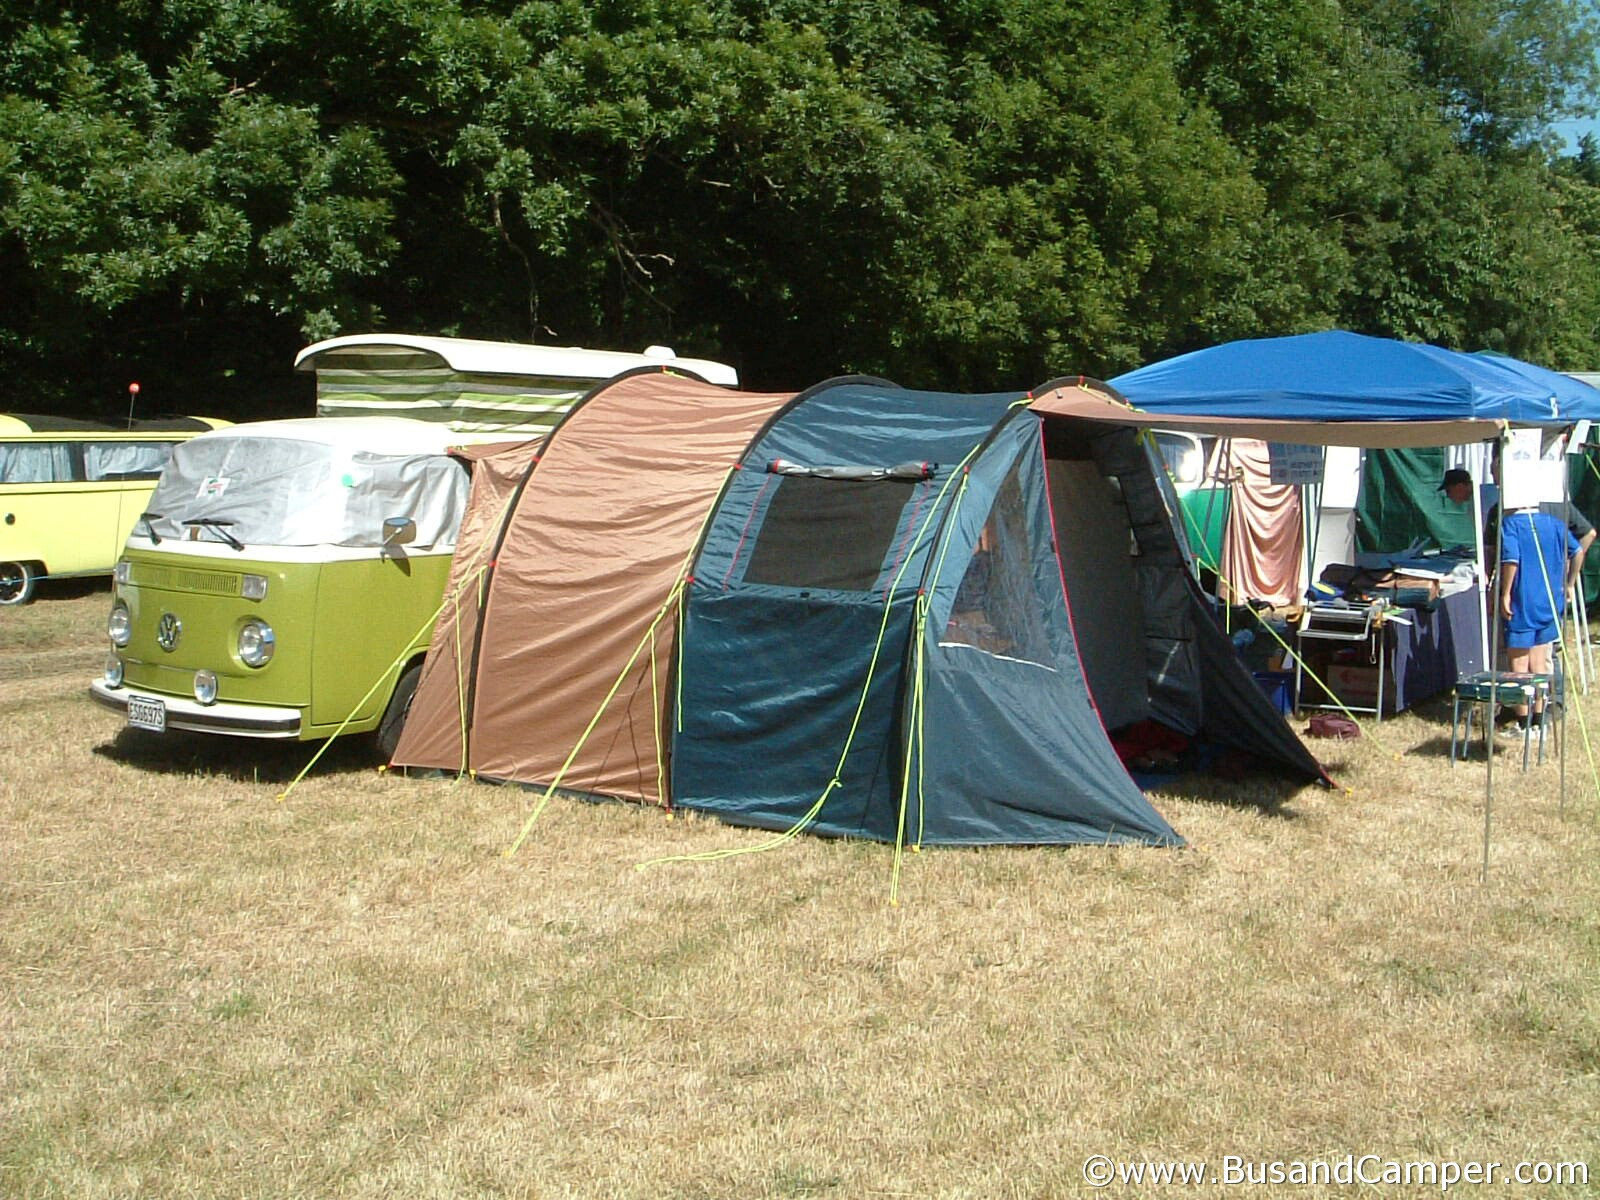 Camper and tent